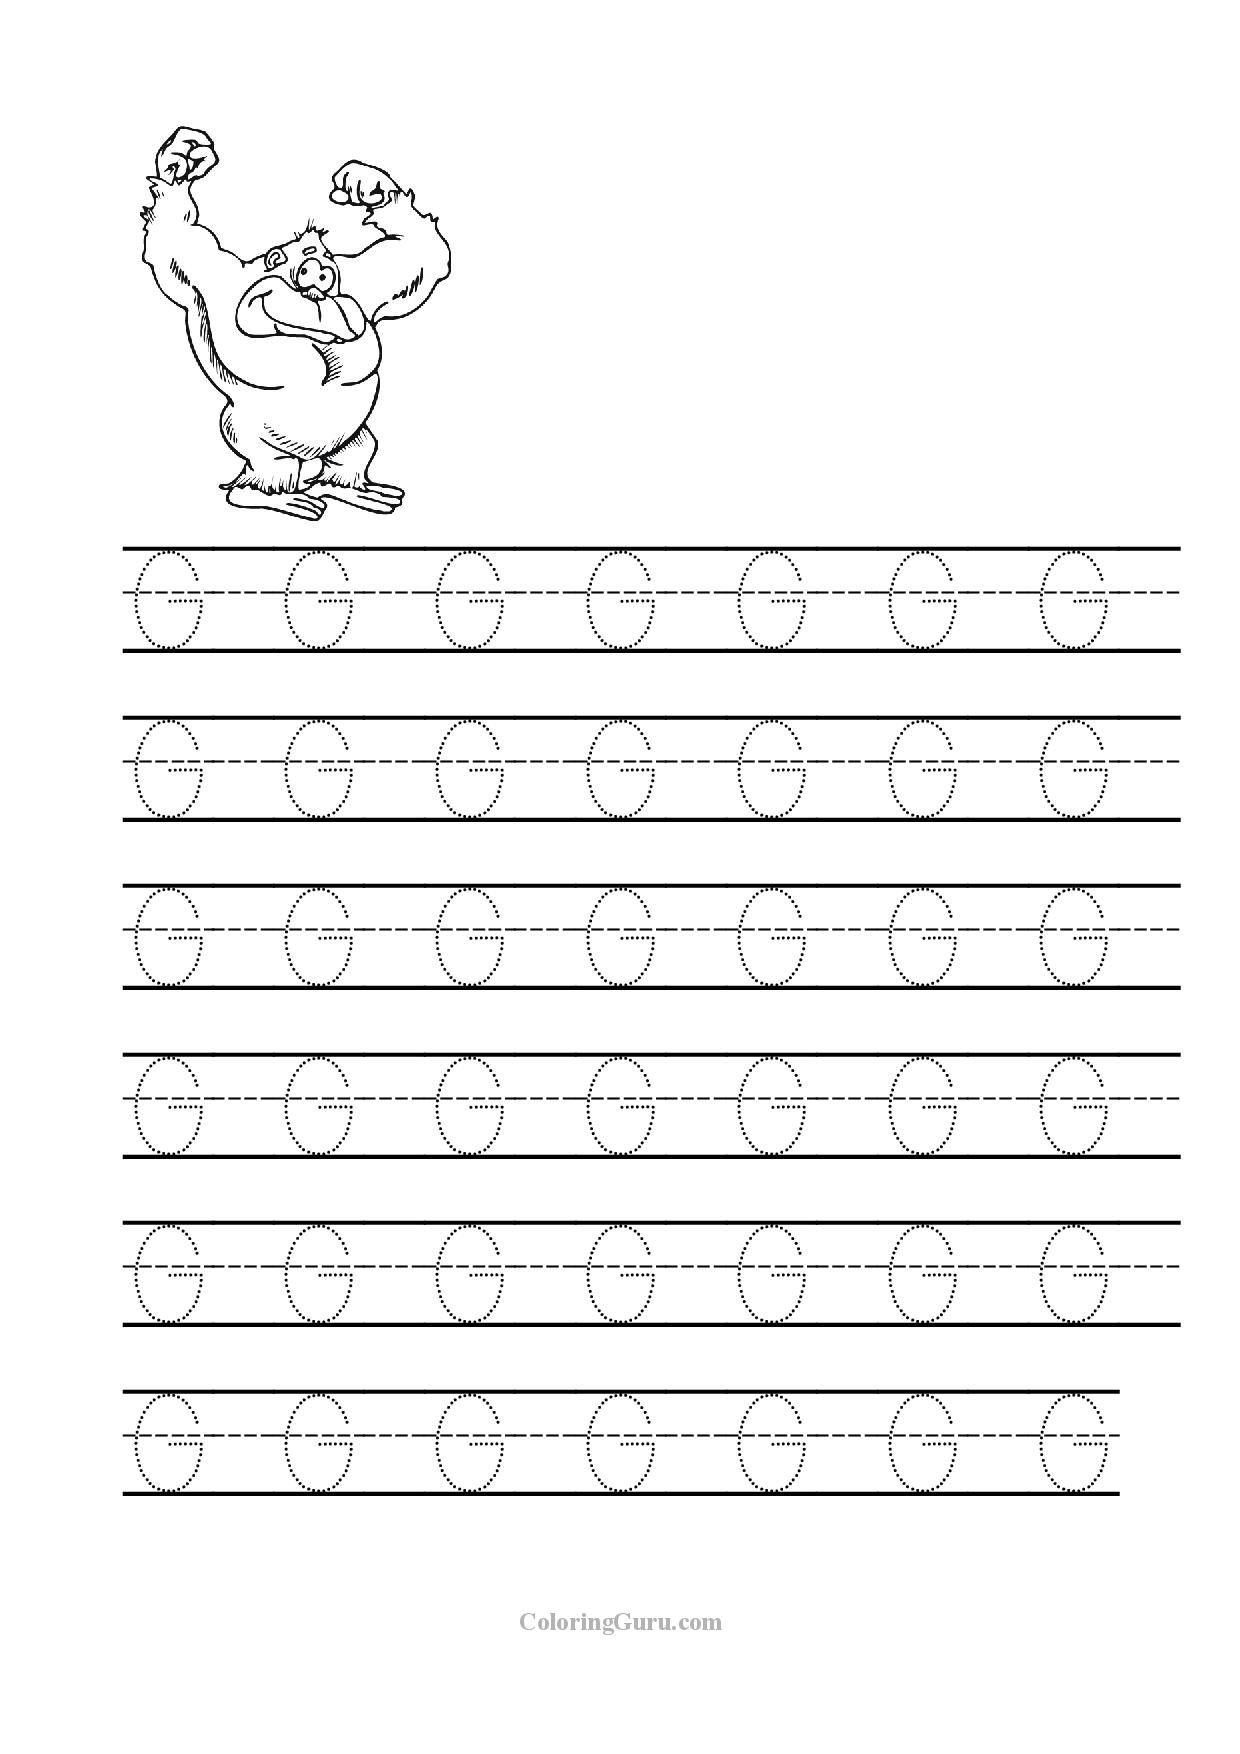 Uppercase Letter Tracing Worksheets Printable Letter E Tracing Worksheets for Preschool On Best